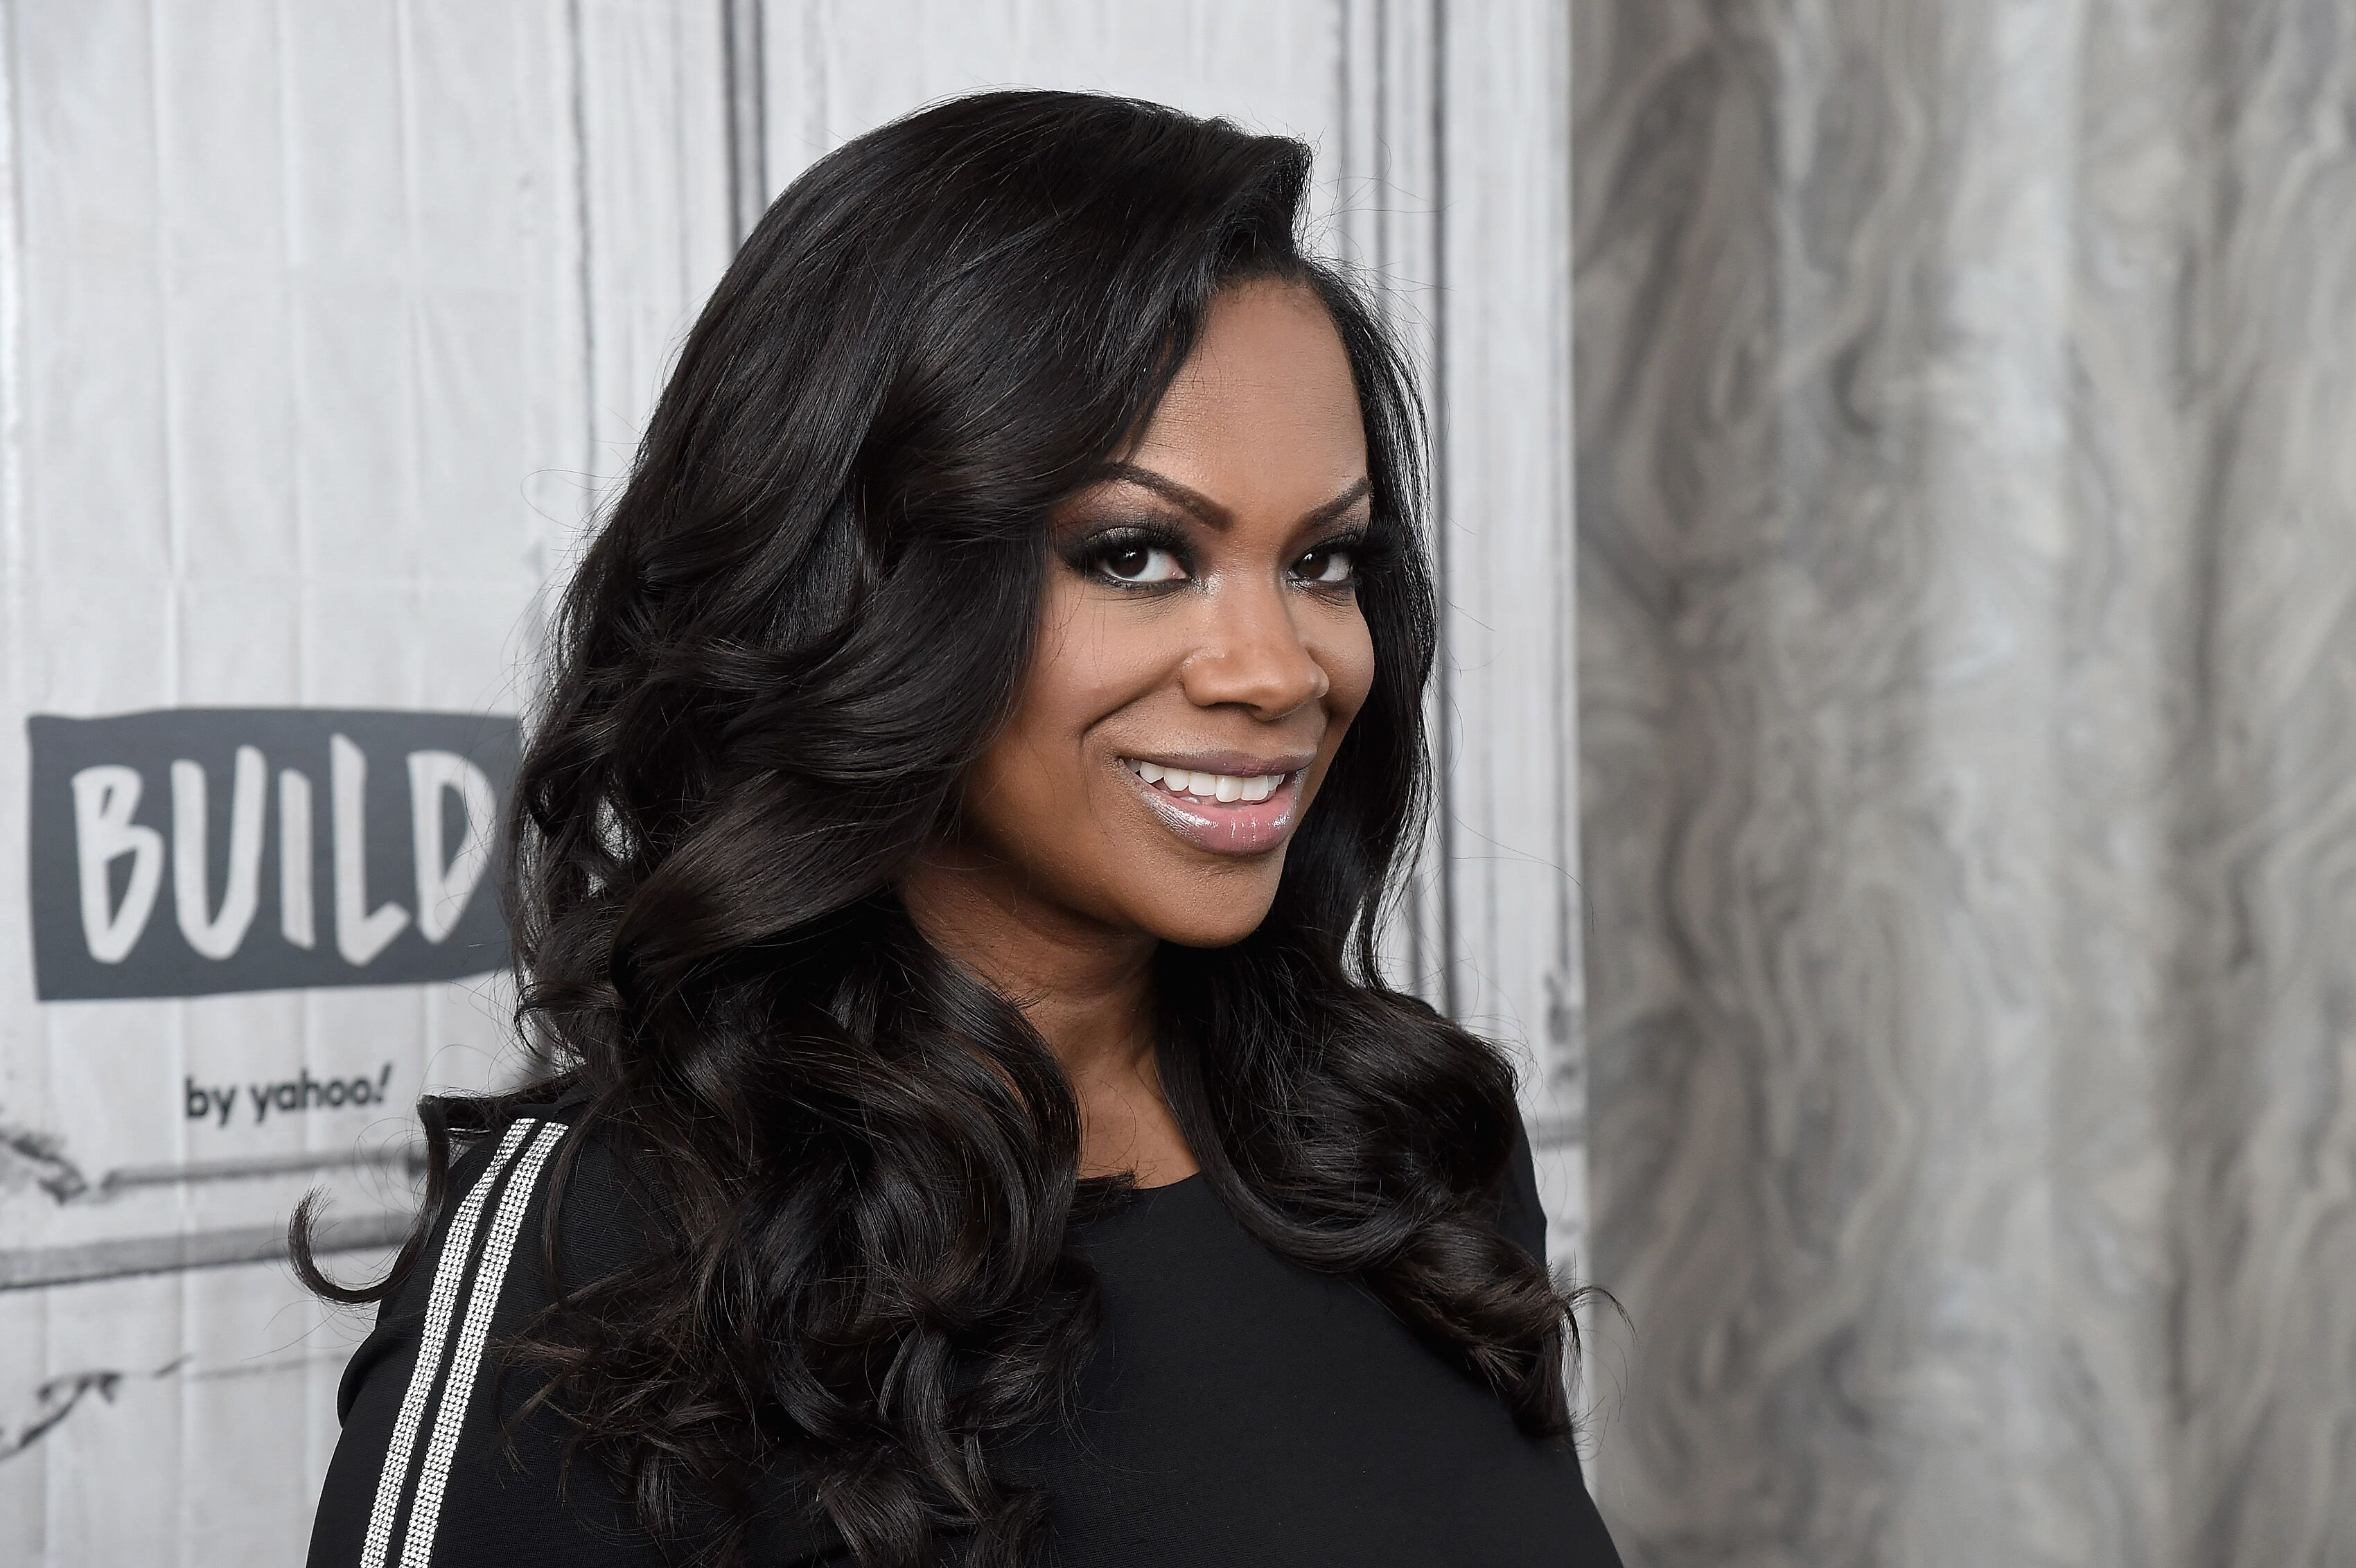 Kandi Burruss attends the Build event by Yahoo! | Source: GettyImages/GlobalImagesUkraine